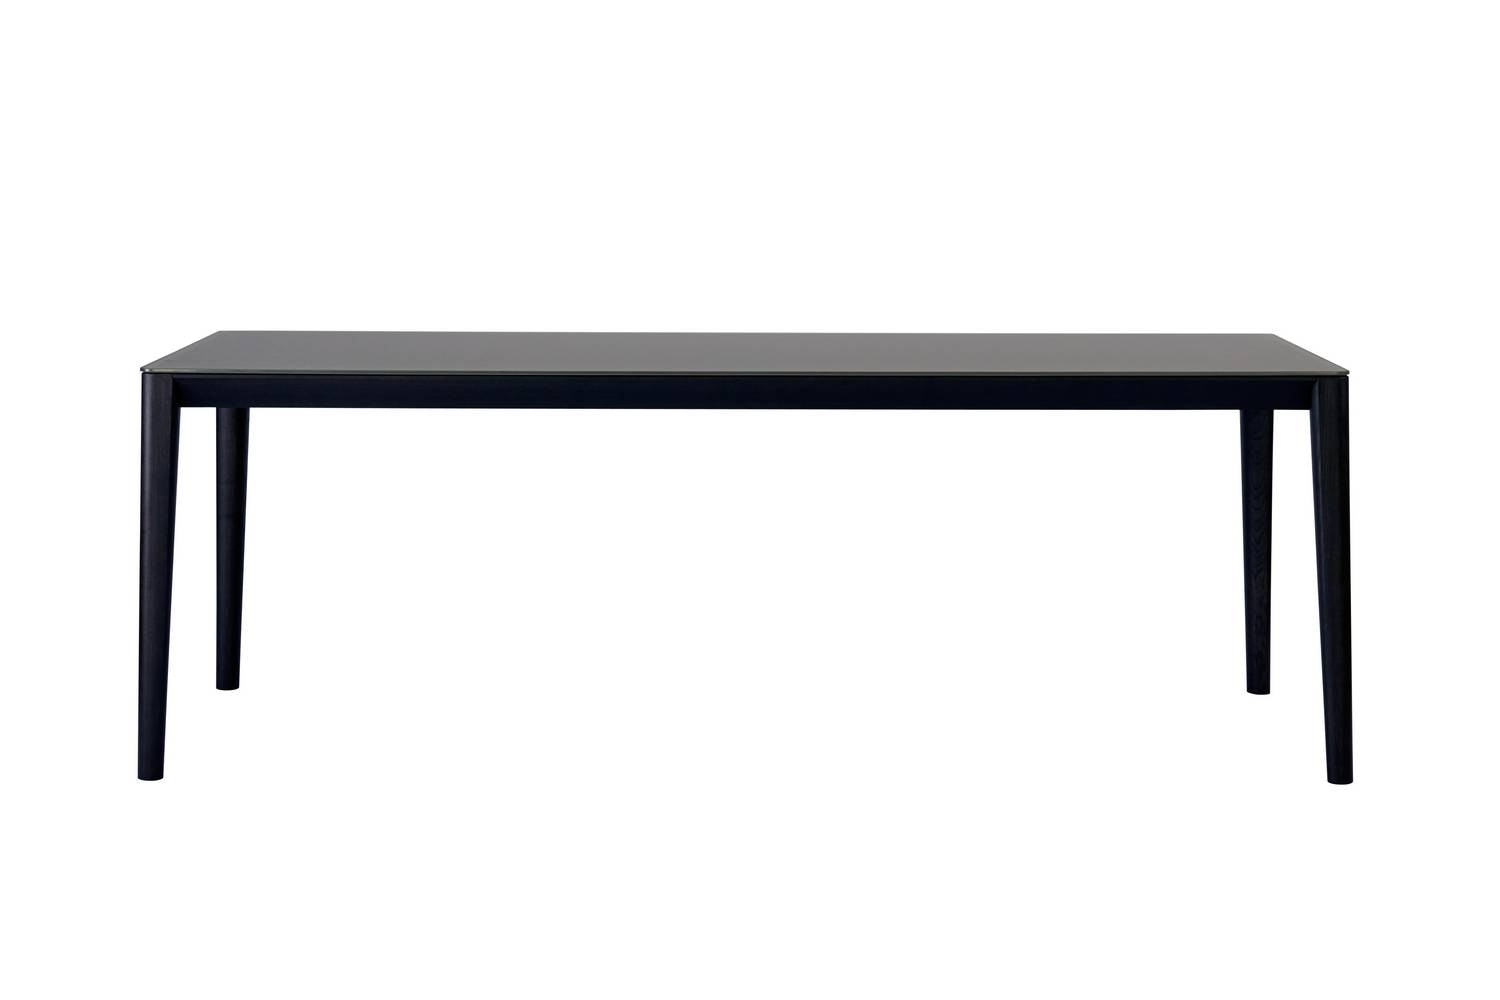 Smith Table by Metrica for SP01